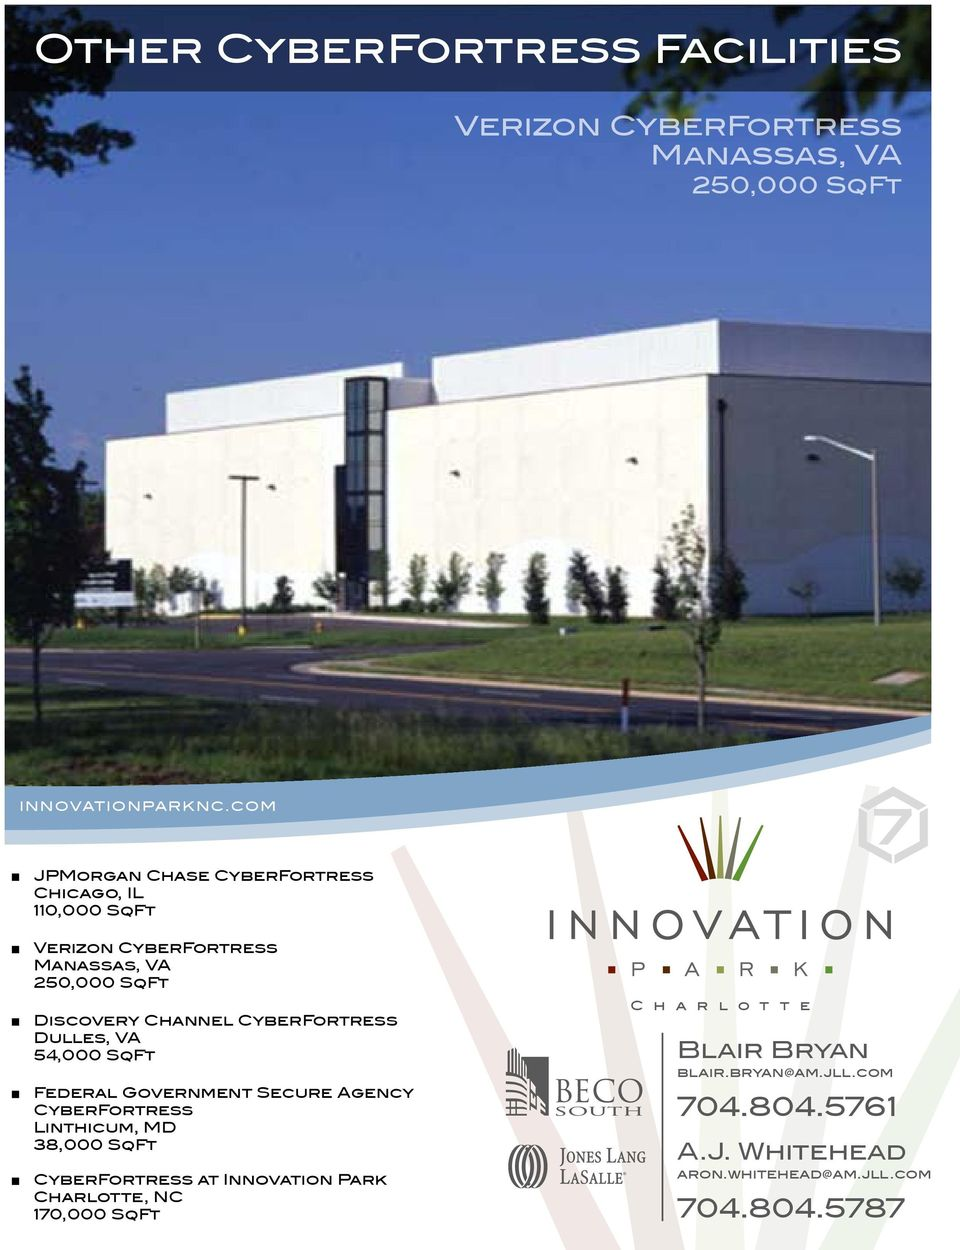 54,000 SqFt Federal Government Secure Agency CyberFortress Linthicum, MD 38,000 SqFt CyberFortress at Innovation Park